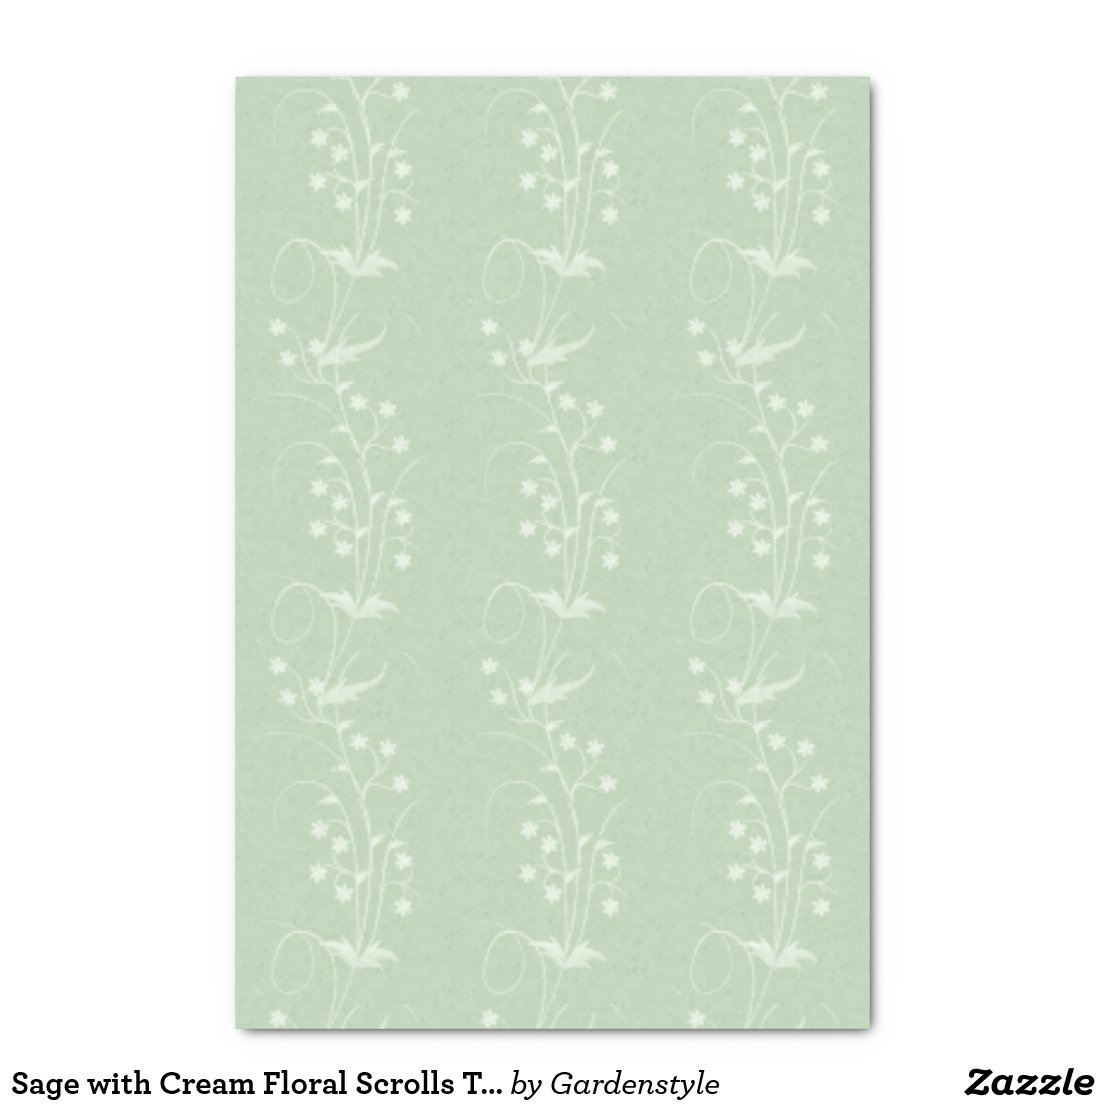 Sage with Cream Floral Scrolls Tissue Paper